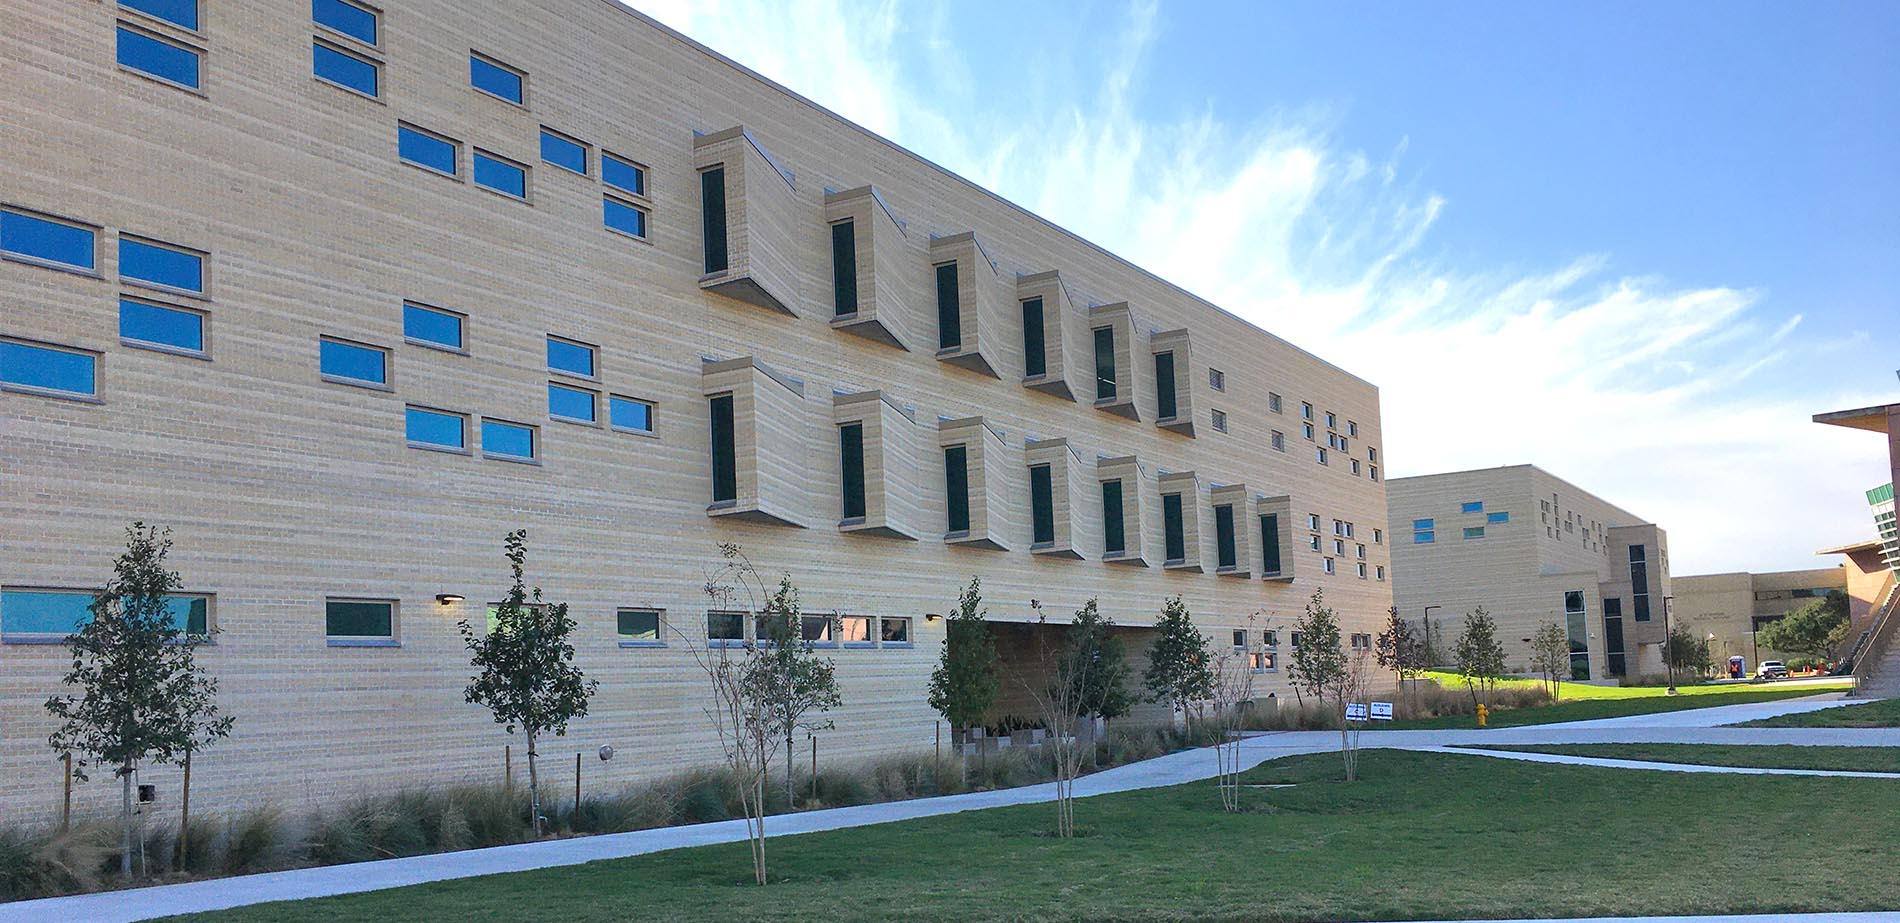 Ground-level image of the new General Academic and Music Building